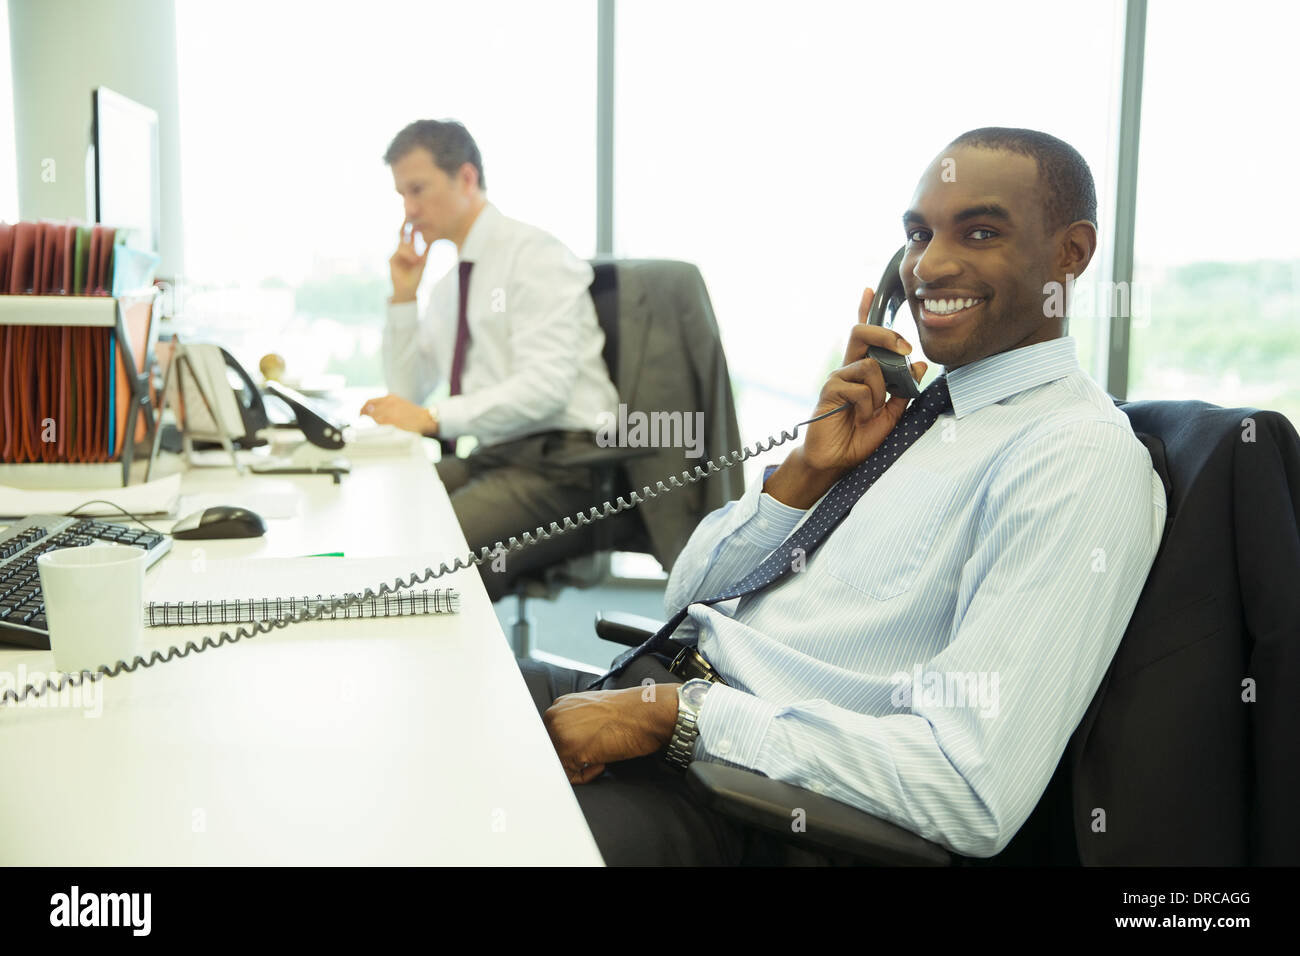 Businessman talking on telephone in office - Stock Image